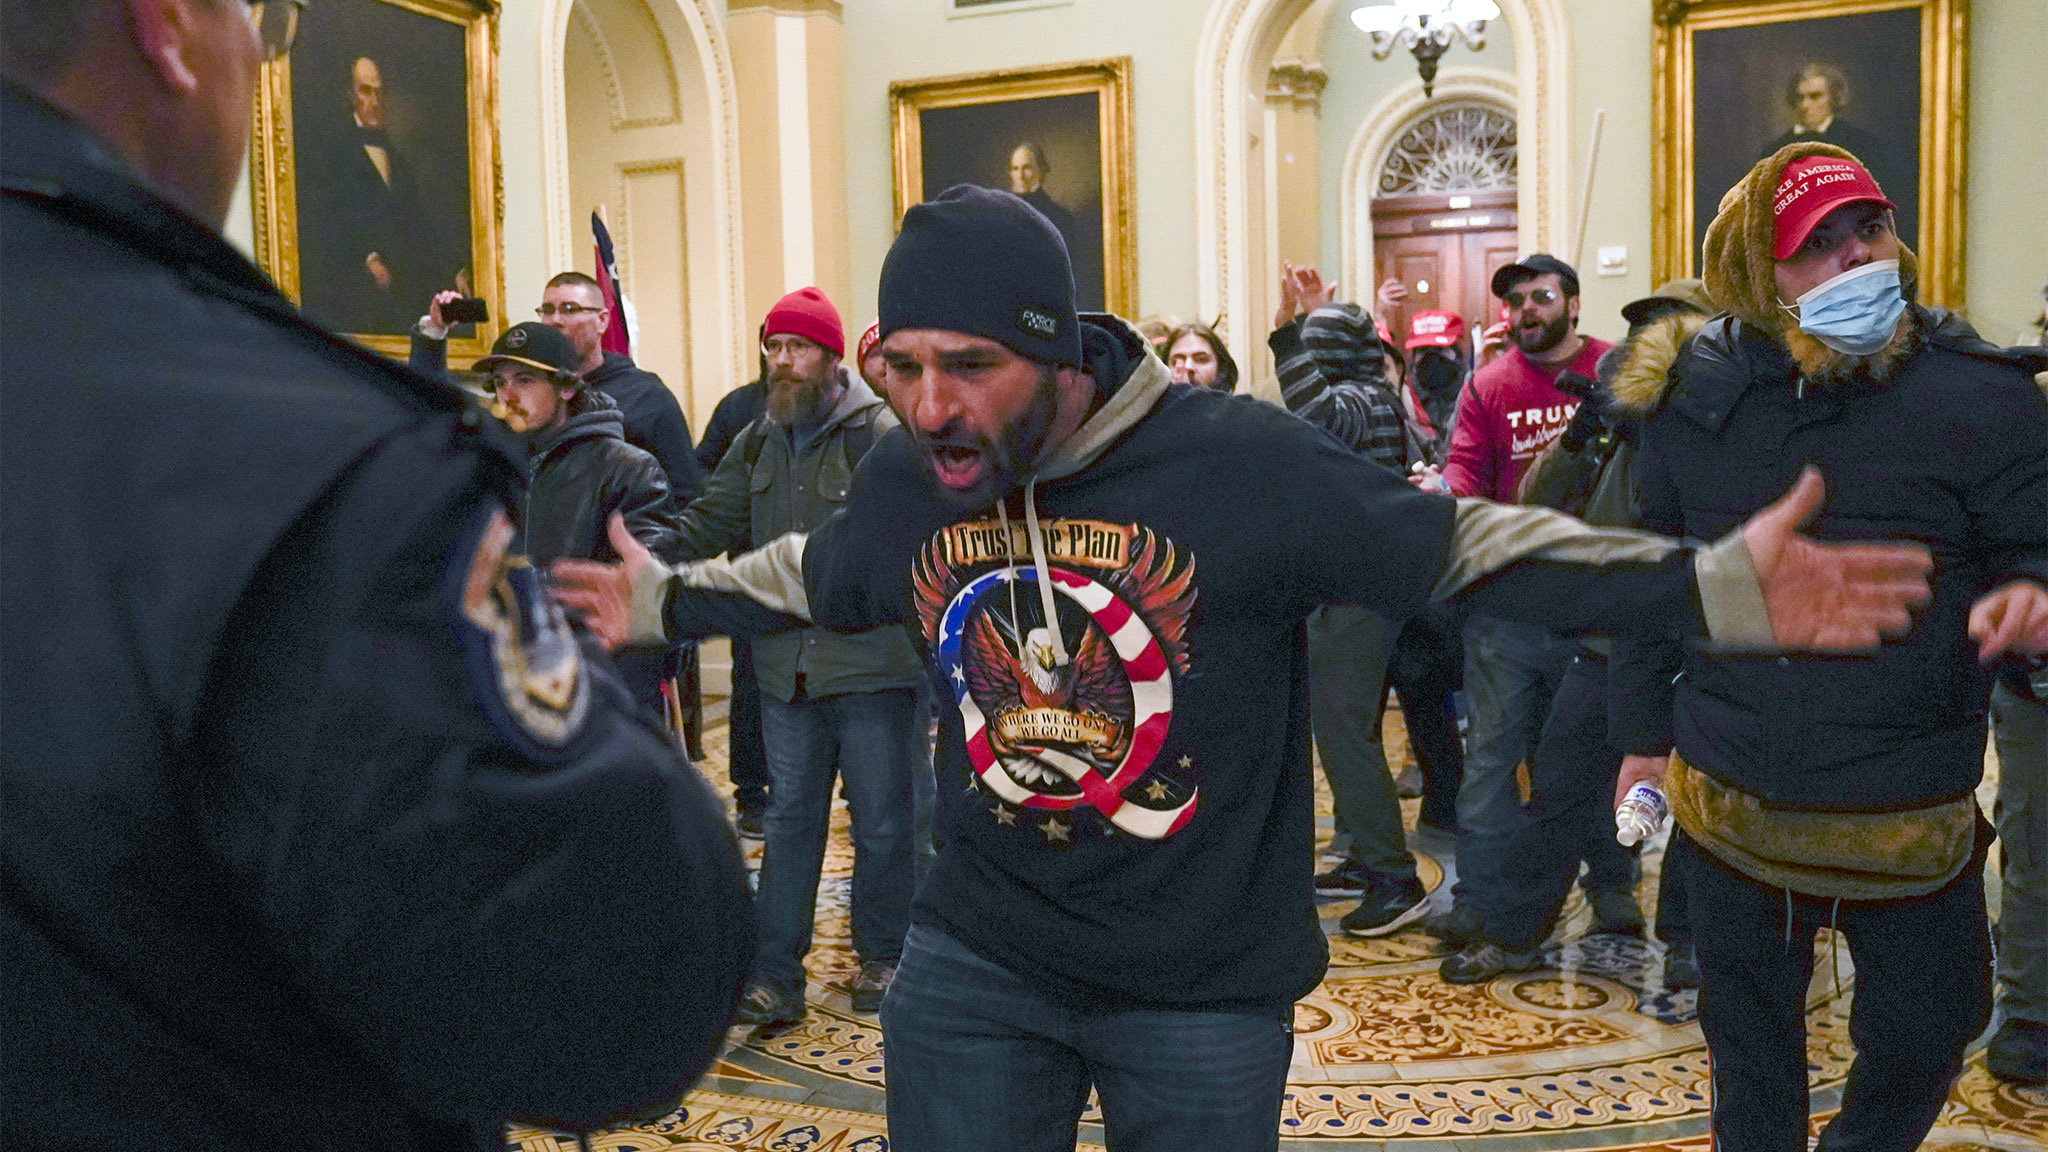 A pro-Trump insurrectionist gestures to U.S. Capitol Police in the hallway outside of the Senate chamber